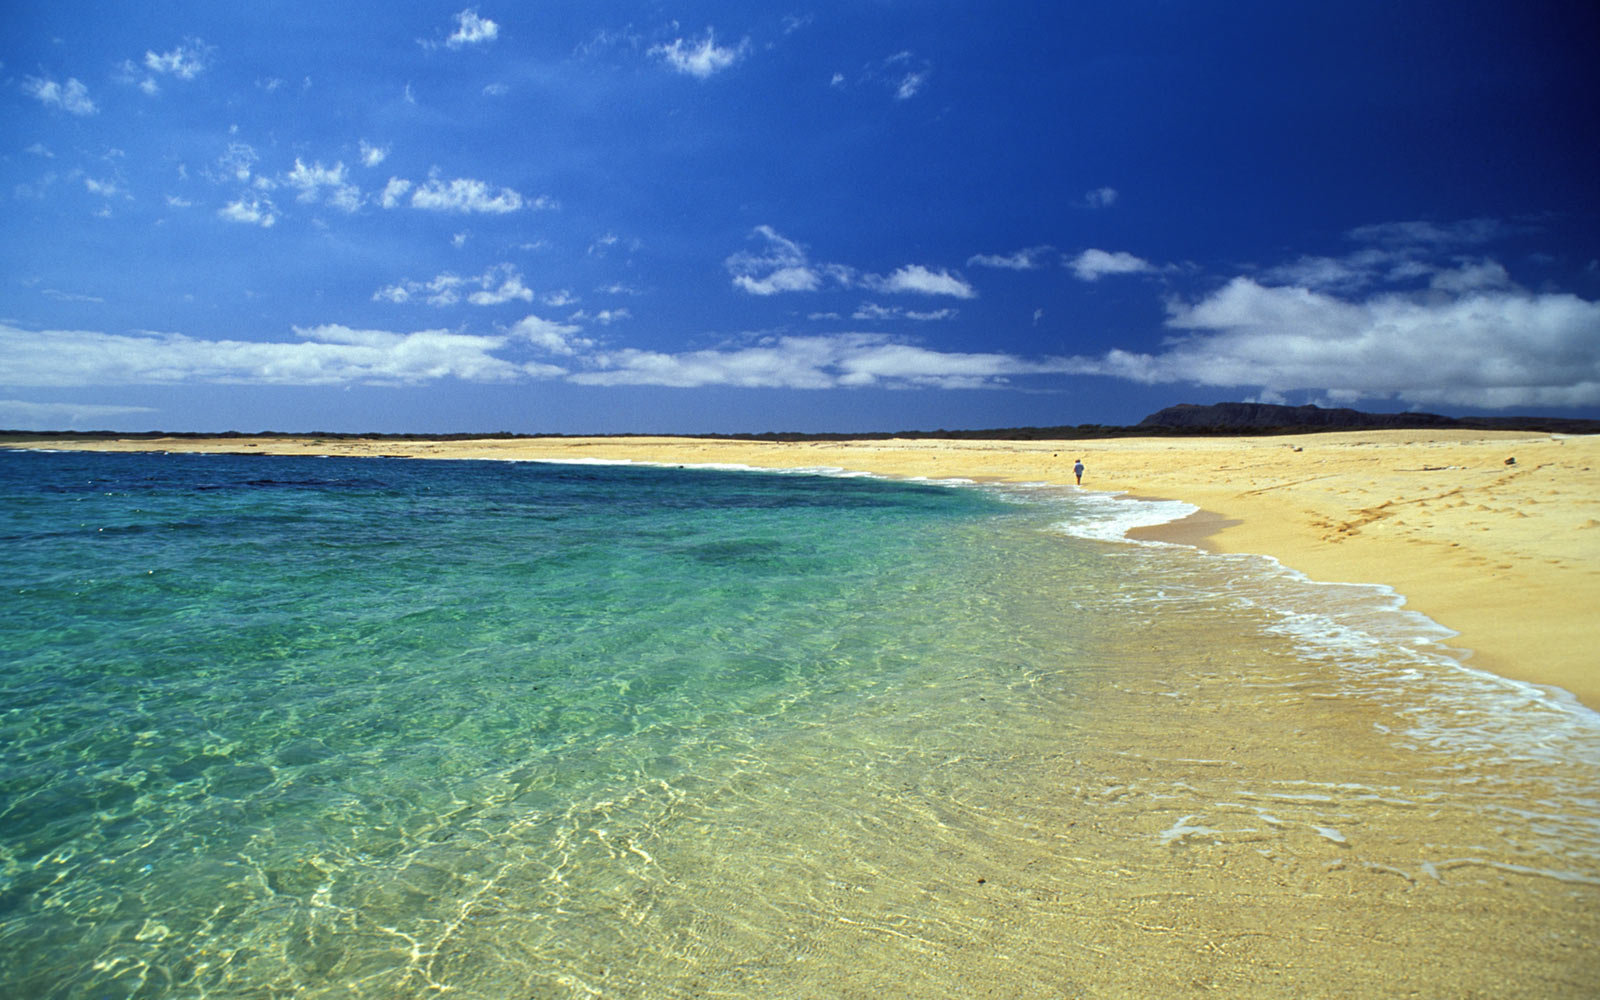 A Hawaiian Islands Guide - Top Points of Interest | Travel ...